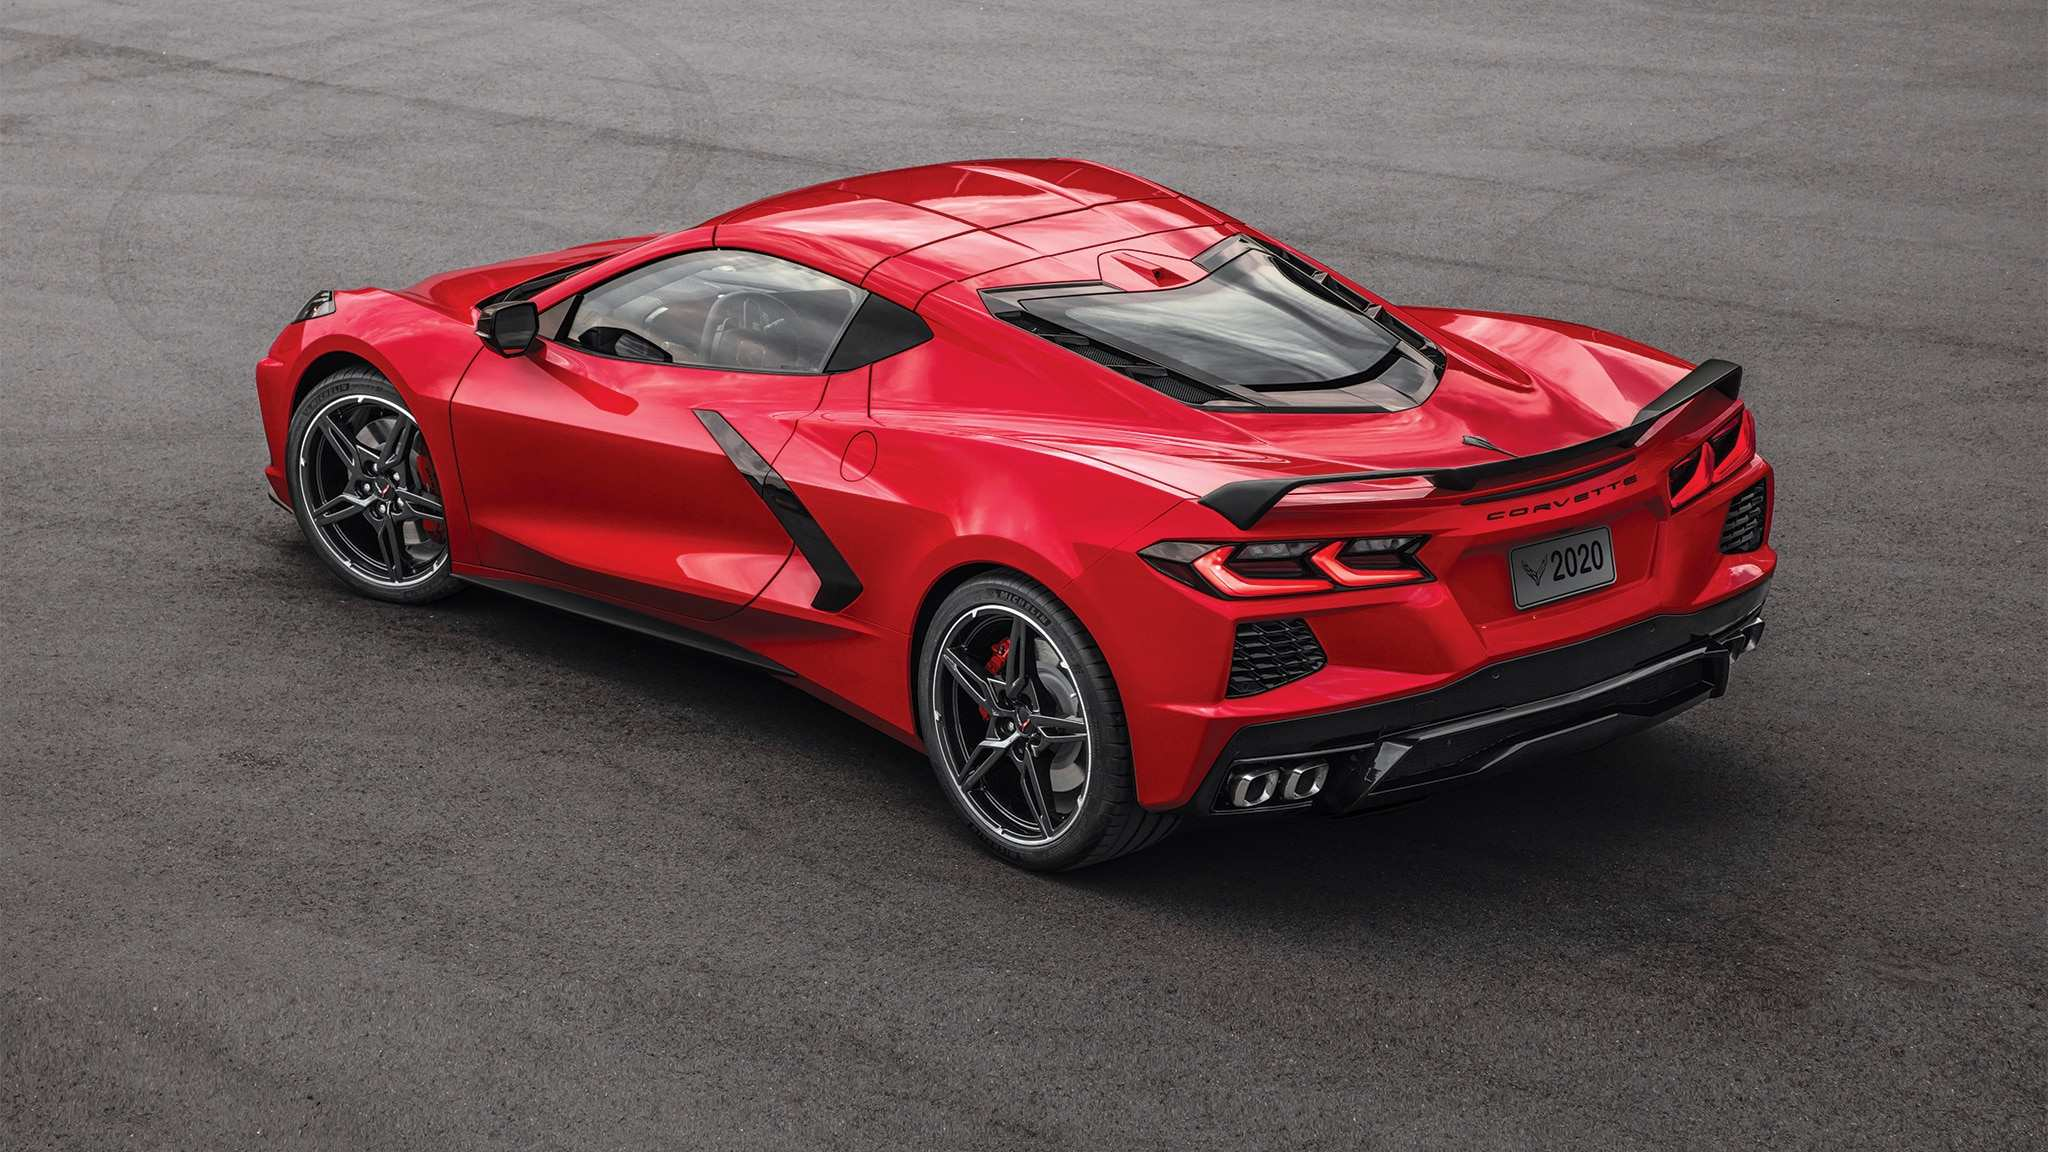 26 All New Chevrolet Corvette 2020 Pictures for Chevrolet Corvette 2020